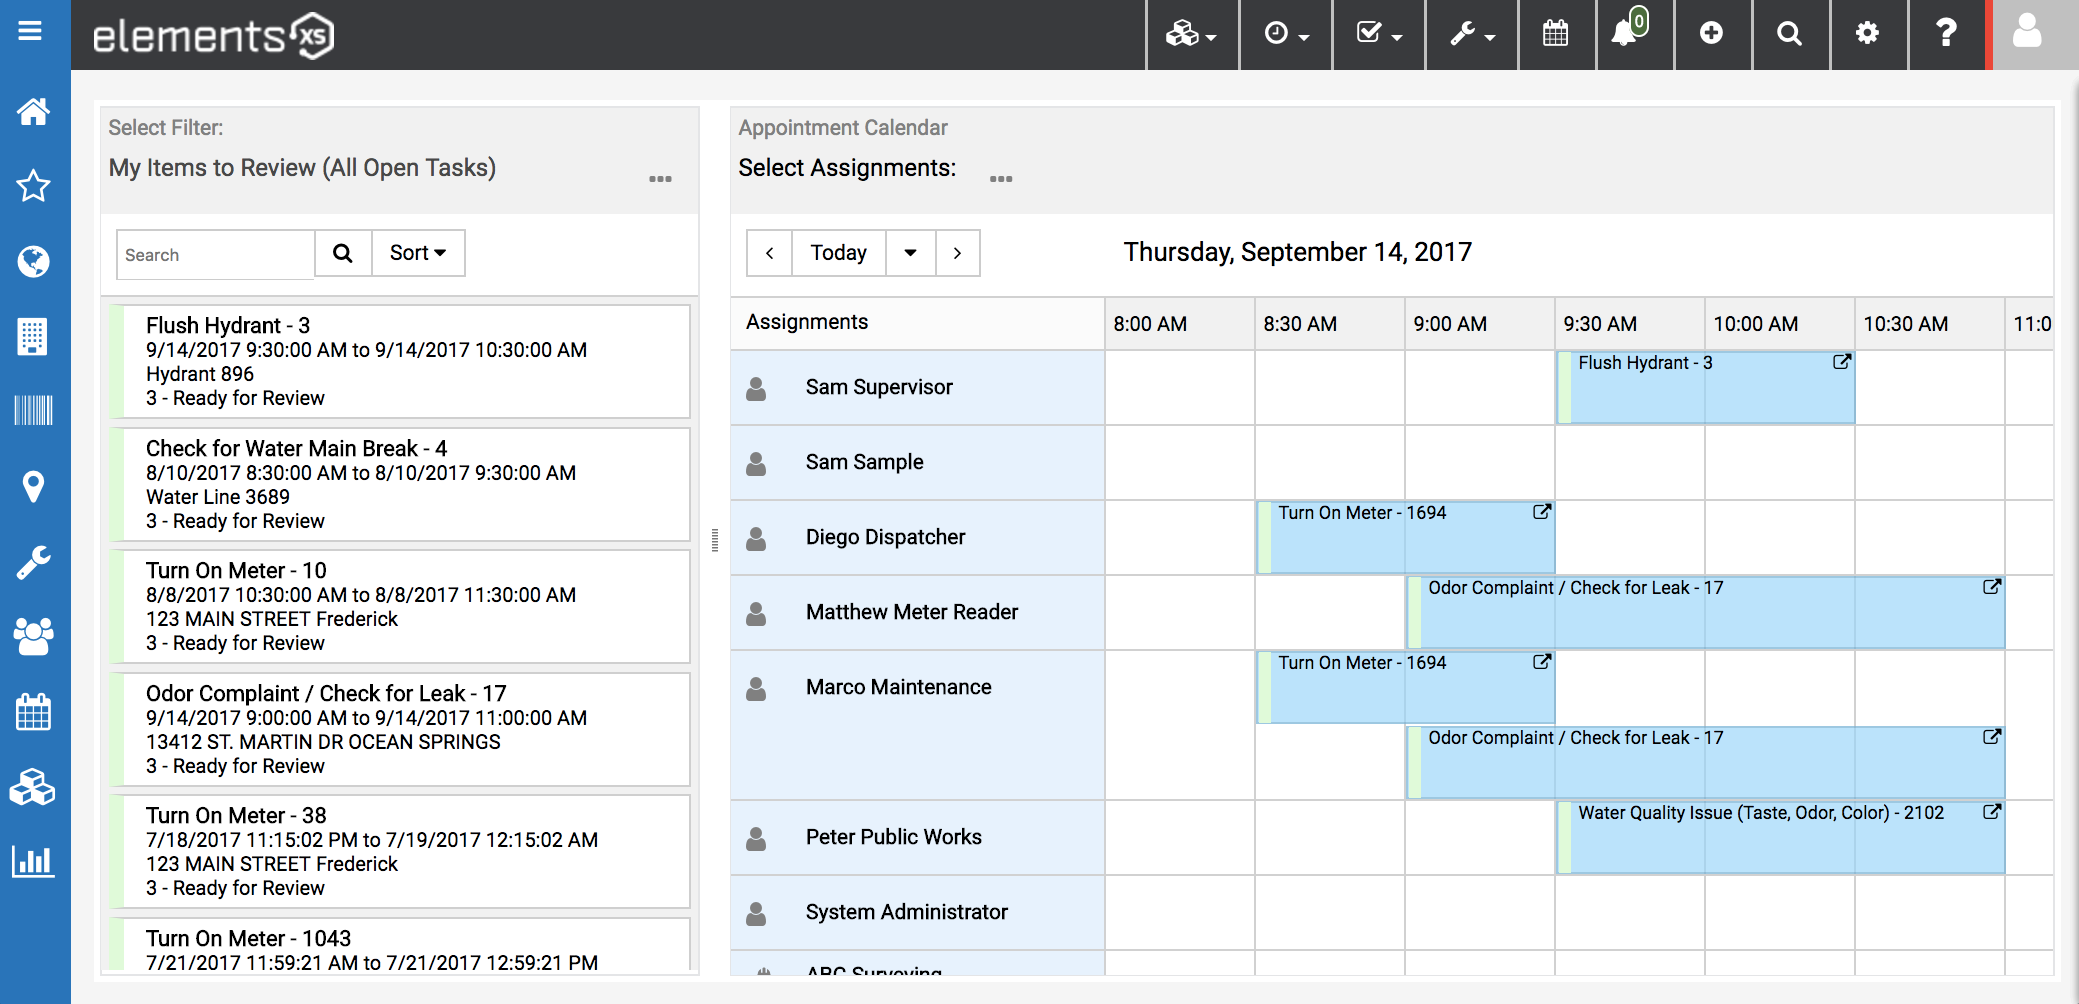 Unique tools for scheduling and dispatching with a fresh, modern user interface.